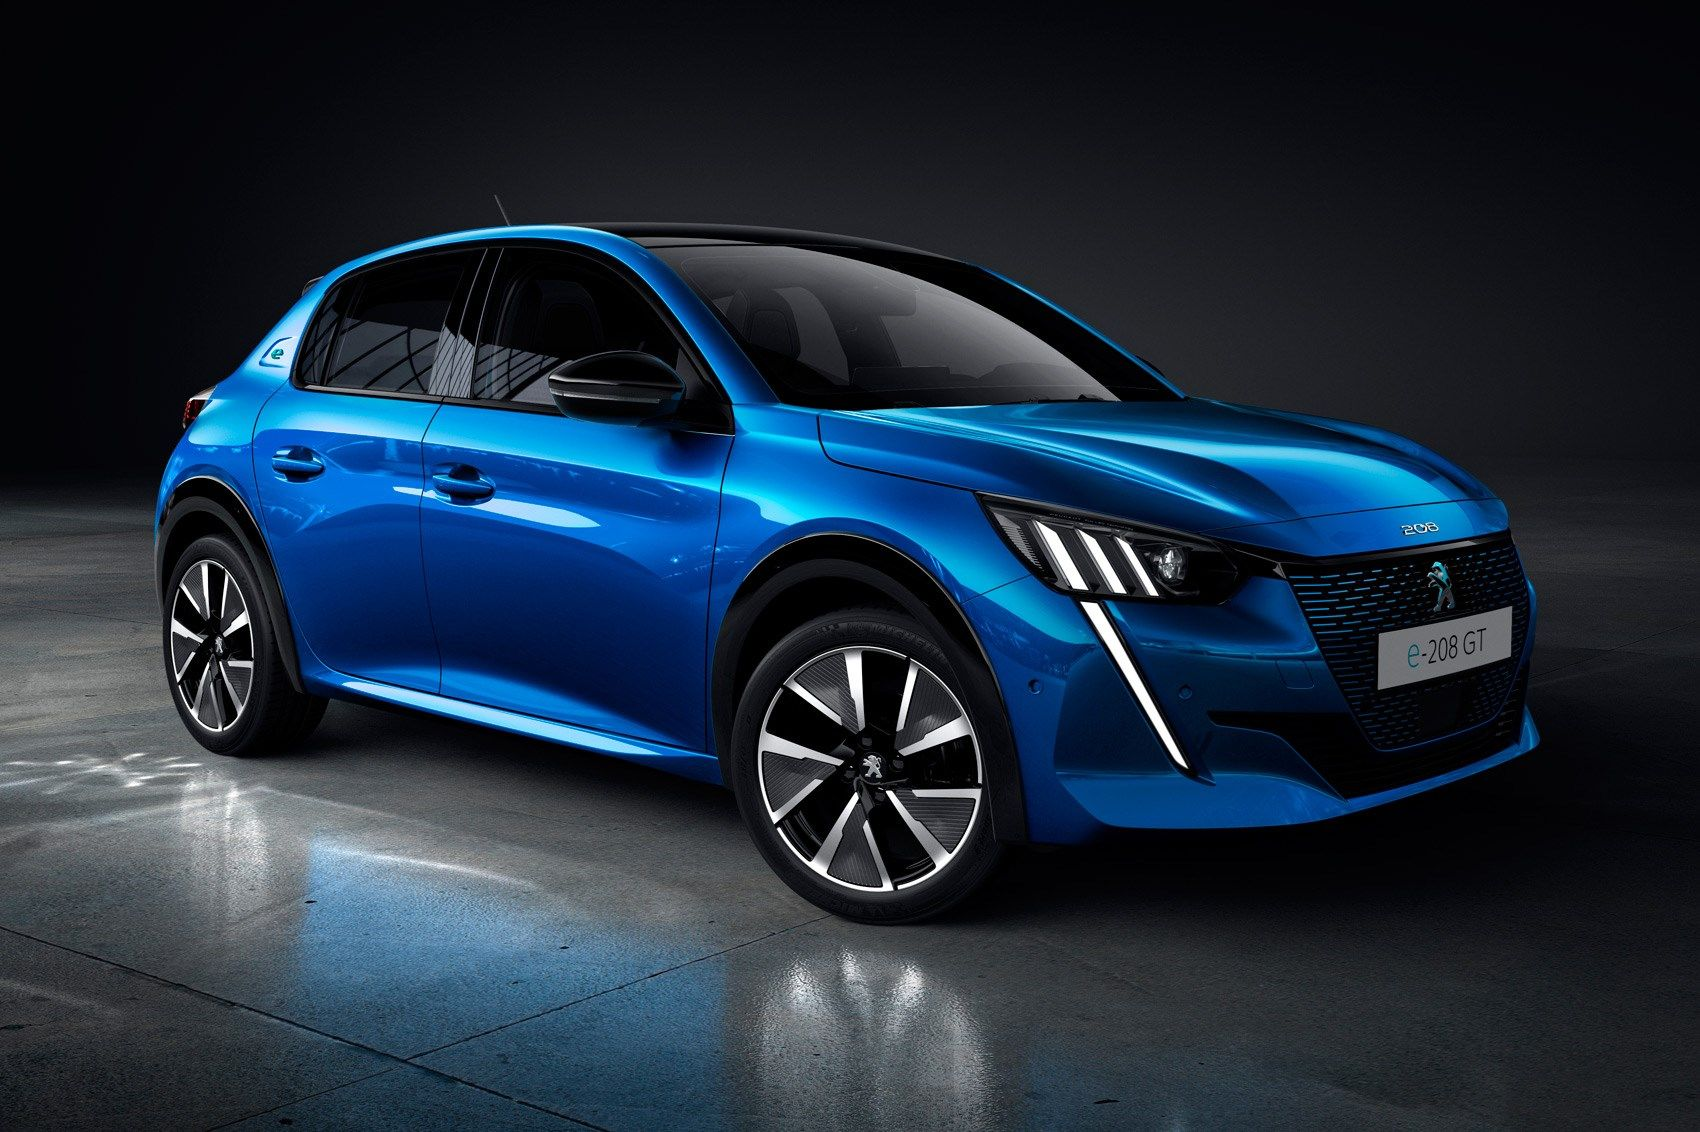 New 2020 Peugeot 208 Prices Confirmed Electric E 208 Tops 25 050